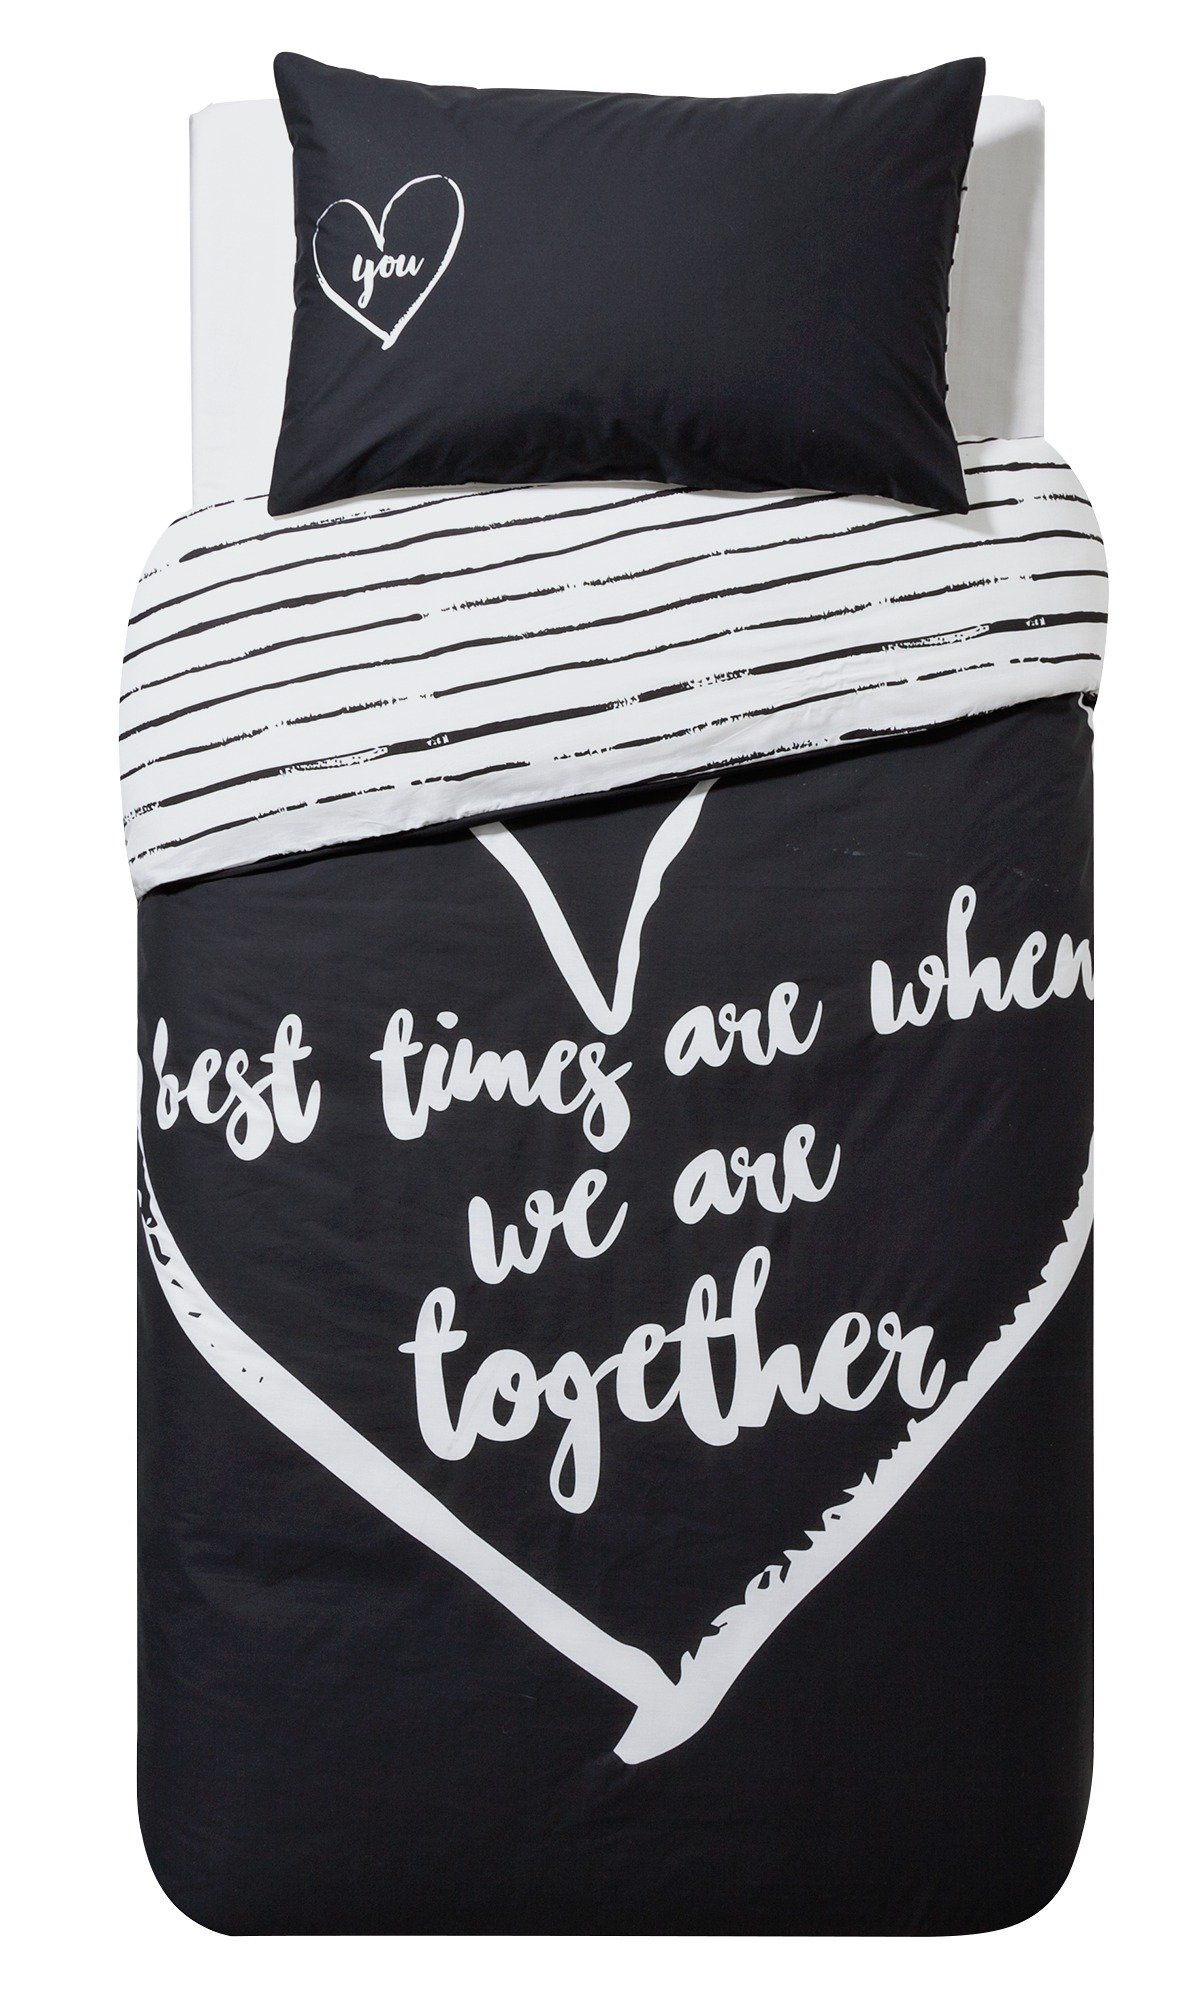 HOME Love Therapy Black Bedding Set - Single.